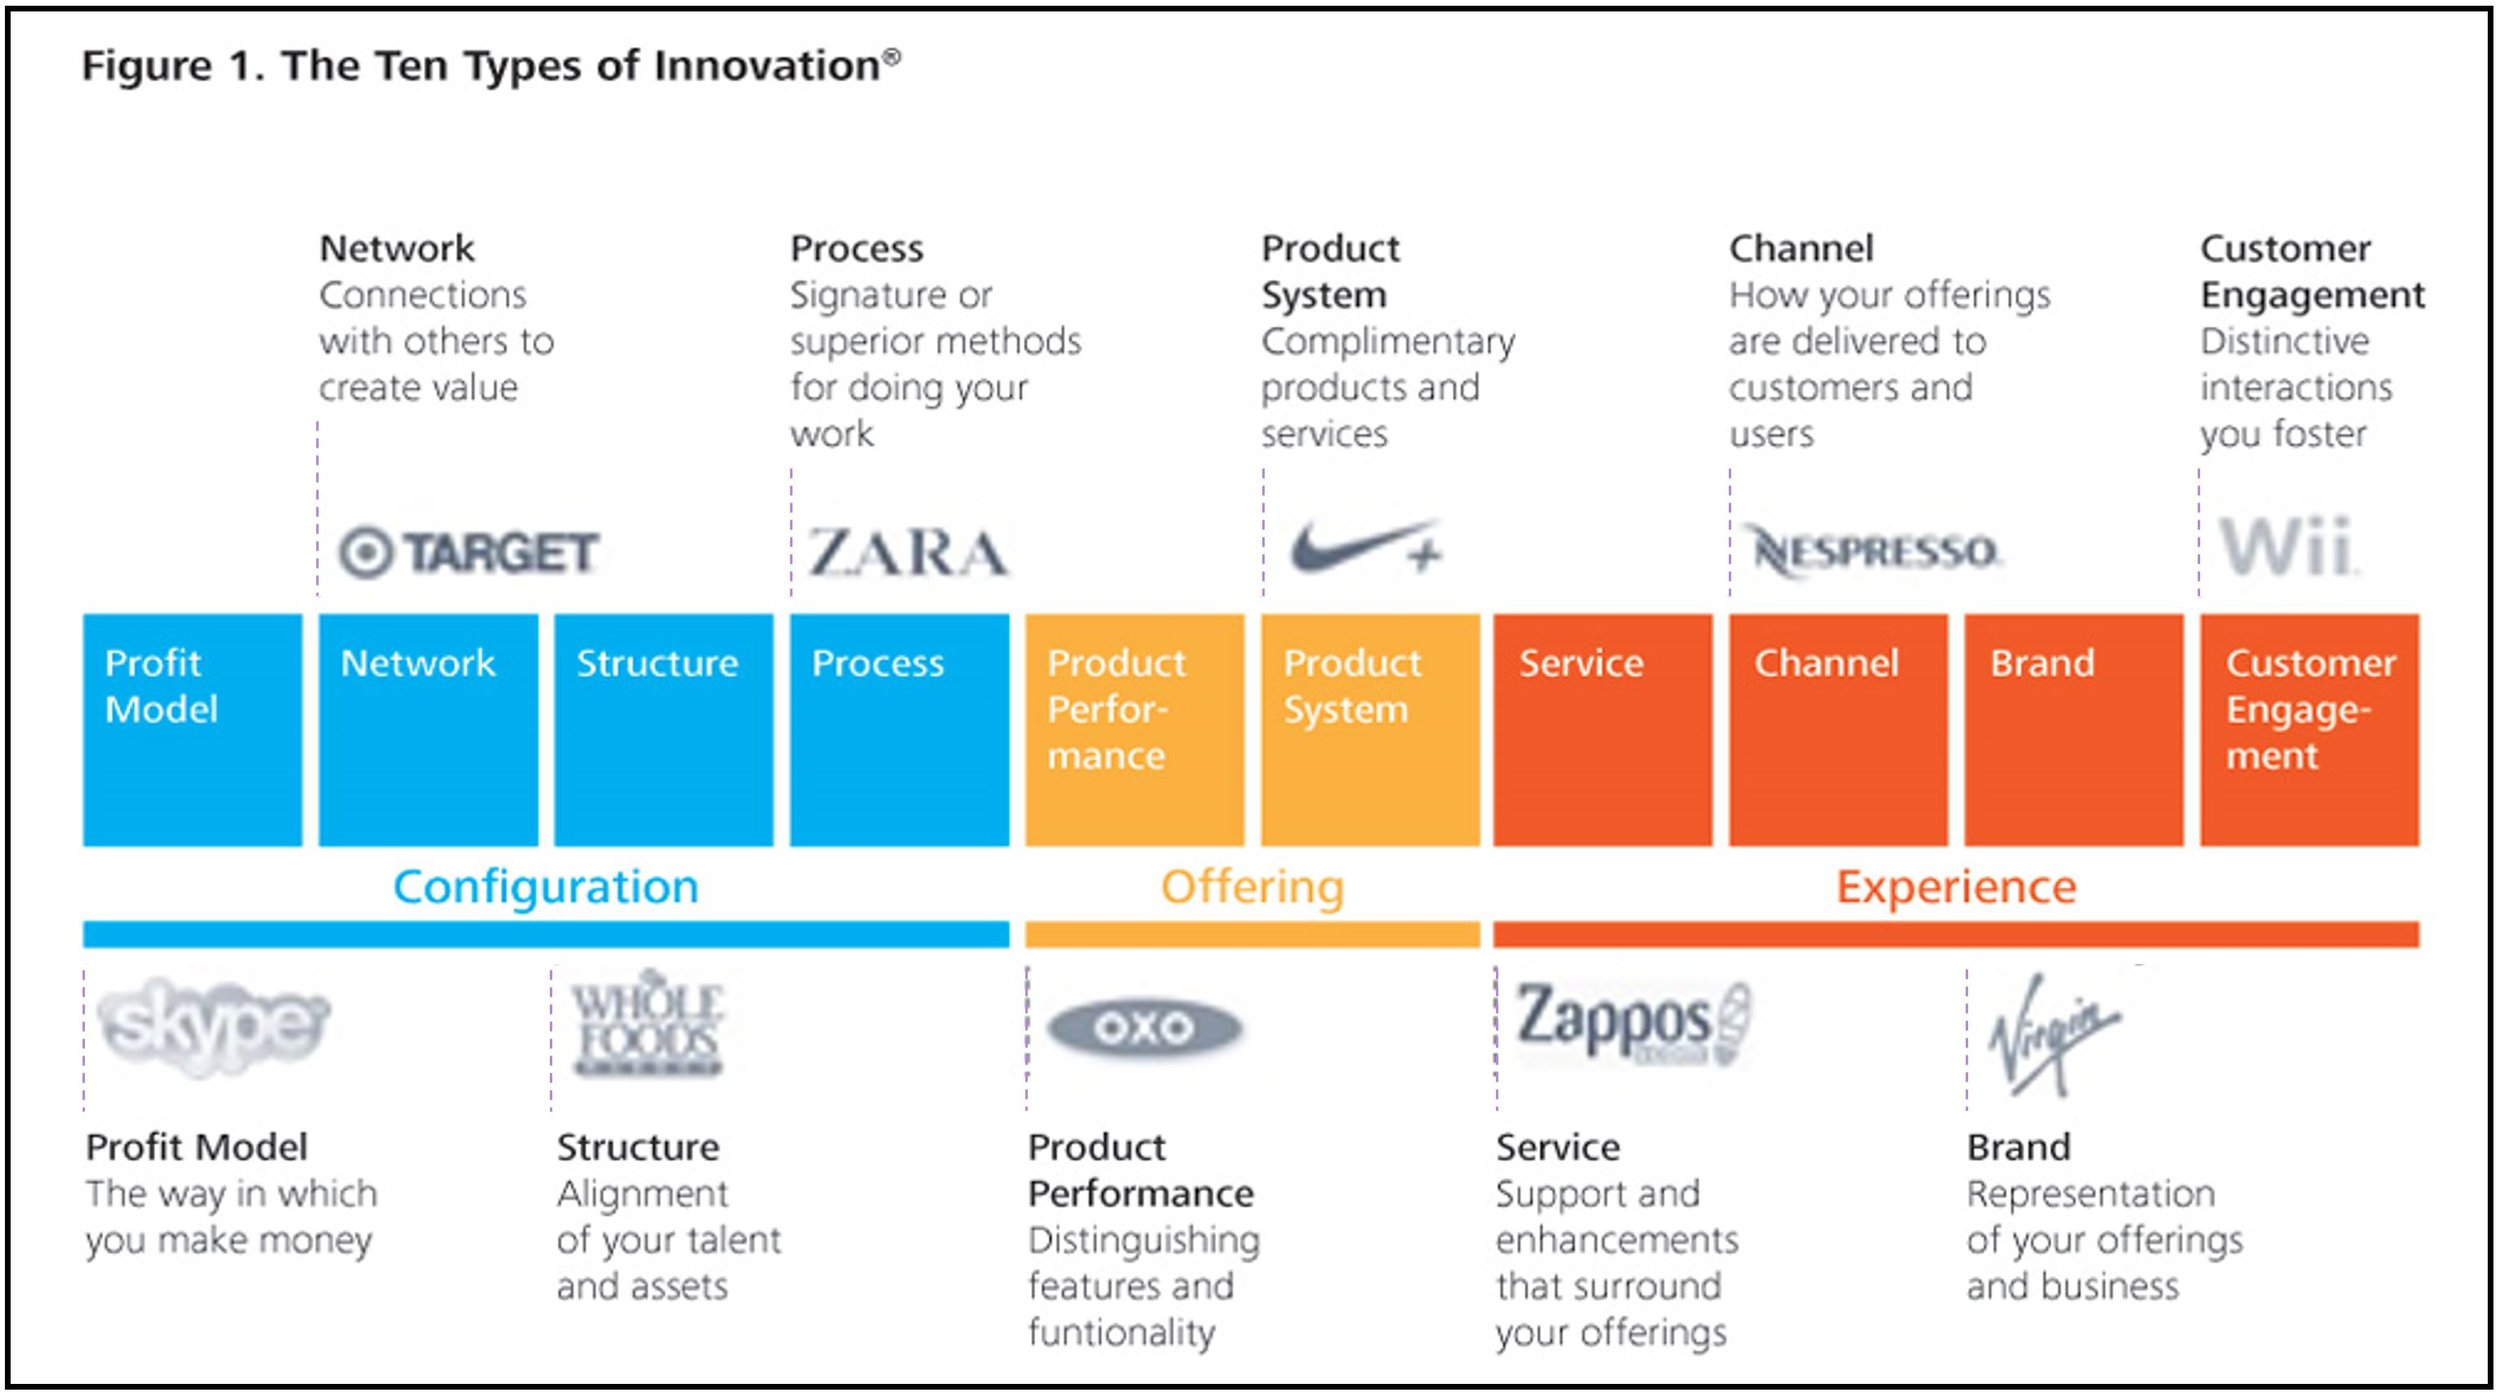 Here is a sense of the ten different ways you can innovate in a business, and which businesses do it well